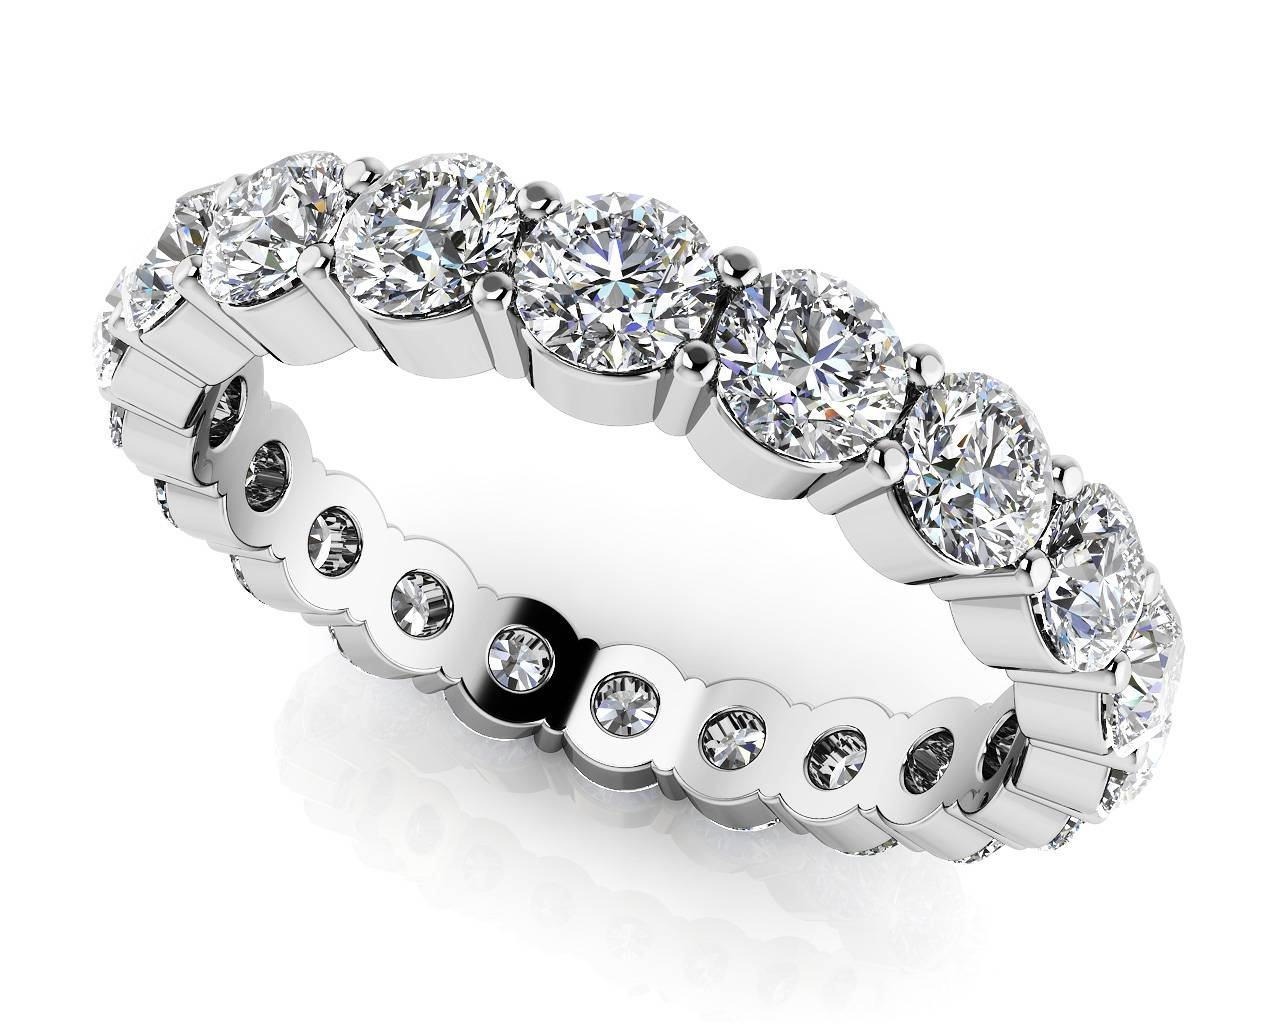 Large Collection Of Quality Diamond Eternity Rings & Bands Inside Newest 2 Carat Diamond Anniversary Rings (View 11 of 15)